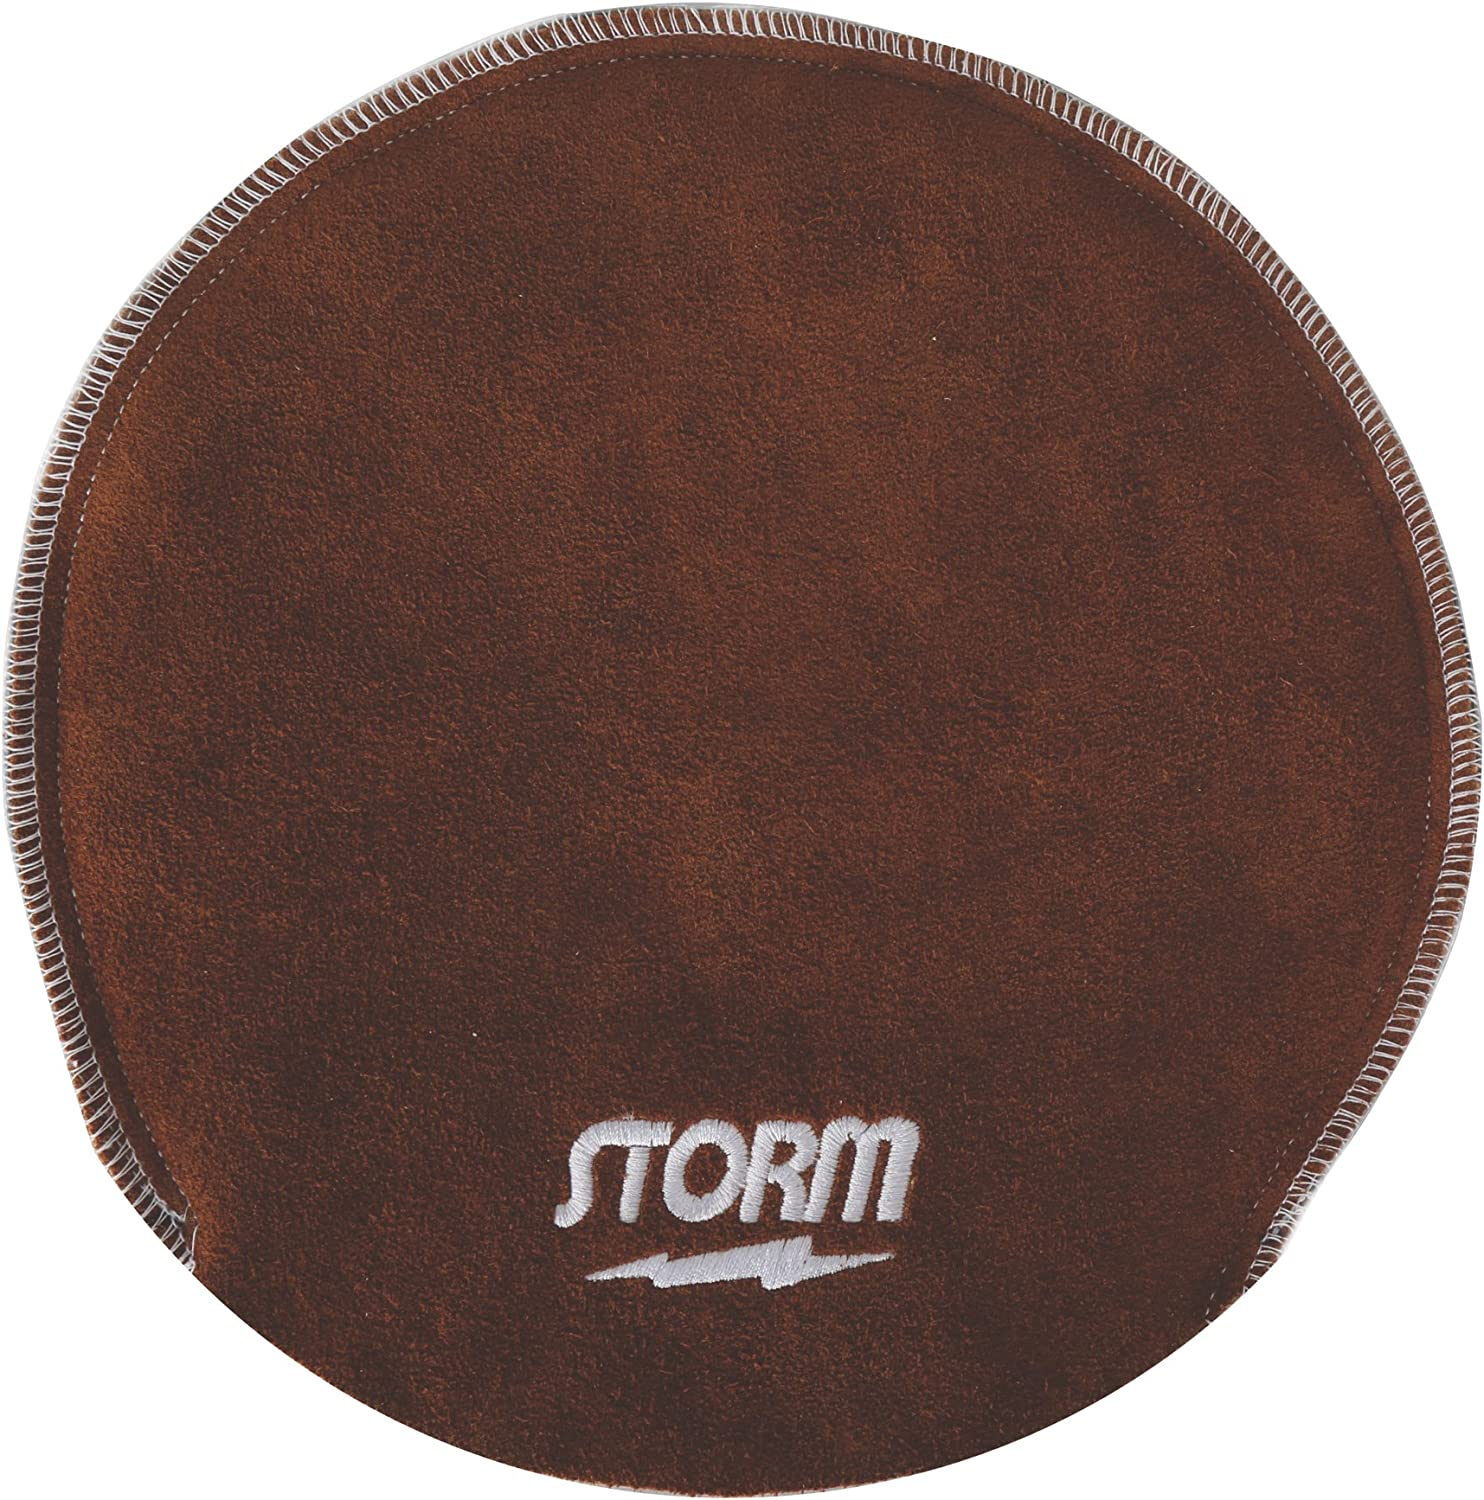 Brand New Storm Bowling Deluxe Shammy Bowling Towel Free Shipping!